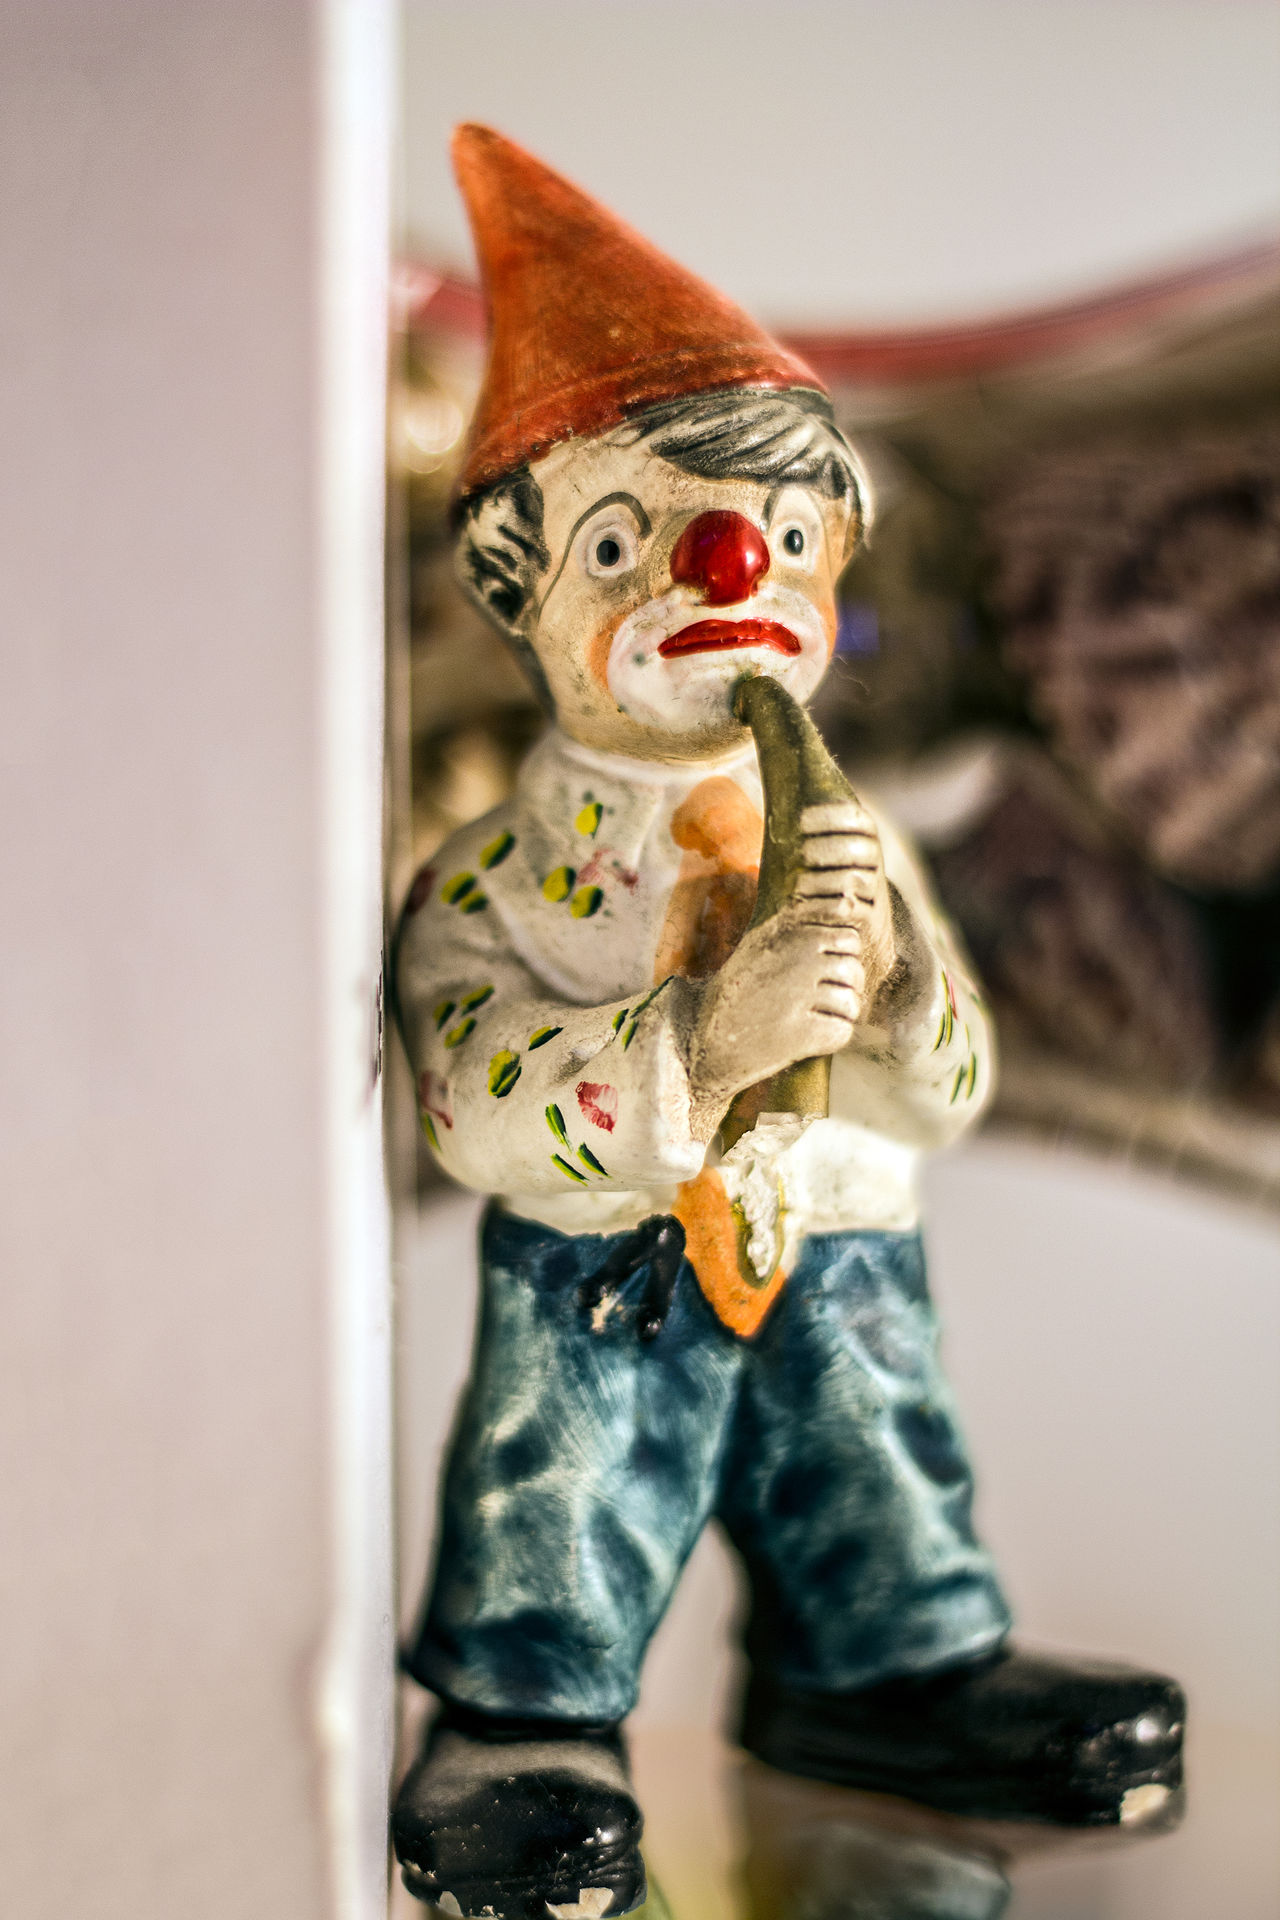 Payaso triste al saxo // Sad clown with saxo Clown Sadclown Payaso Payaso Triste Saxophone Saxofon Figura Figure Macro Photography Stock Stockphotography